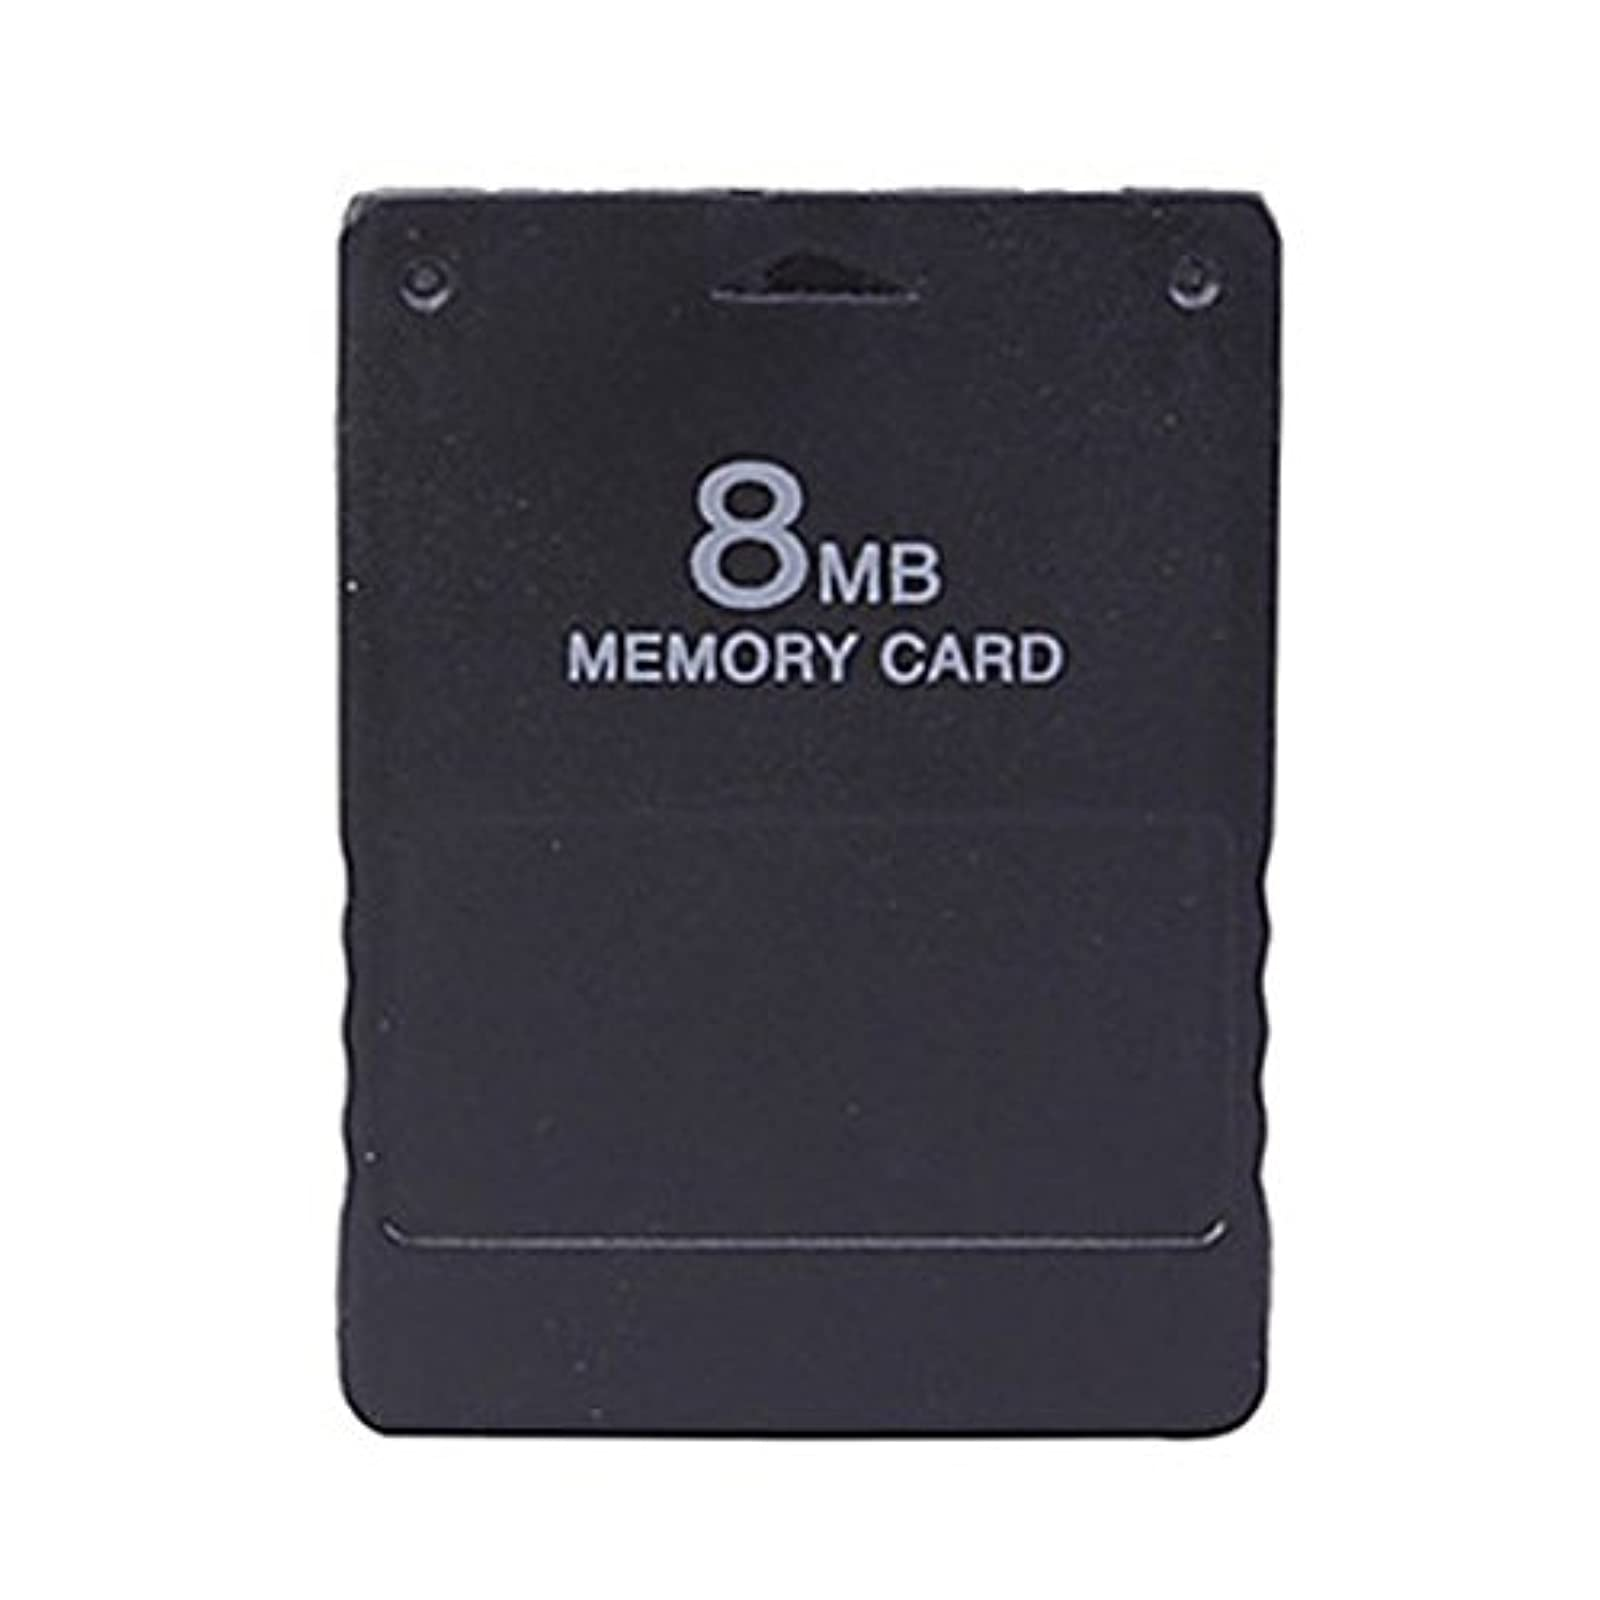 8MB Memory Card For PS2 For PlayStation 2 Expansion